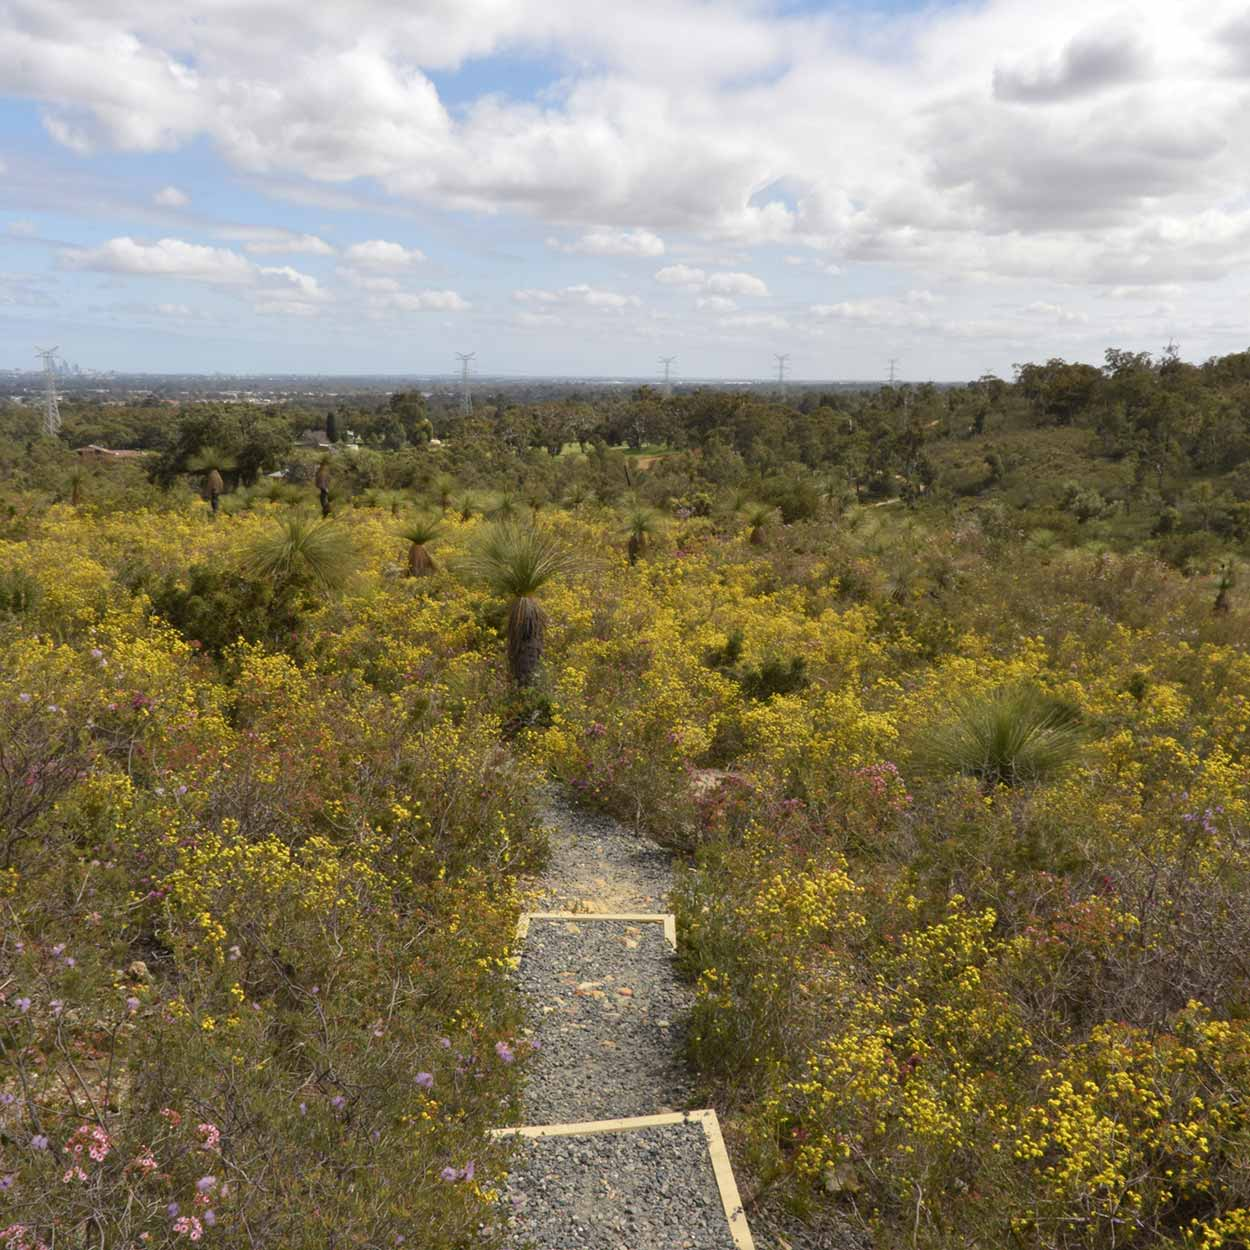 Wildflowers in bloom on the Eagle View Trail, Ellis Brook Valley Reserve, Perth, Western Australia